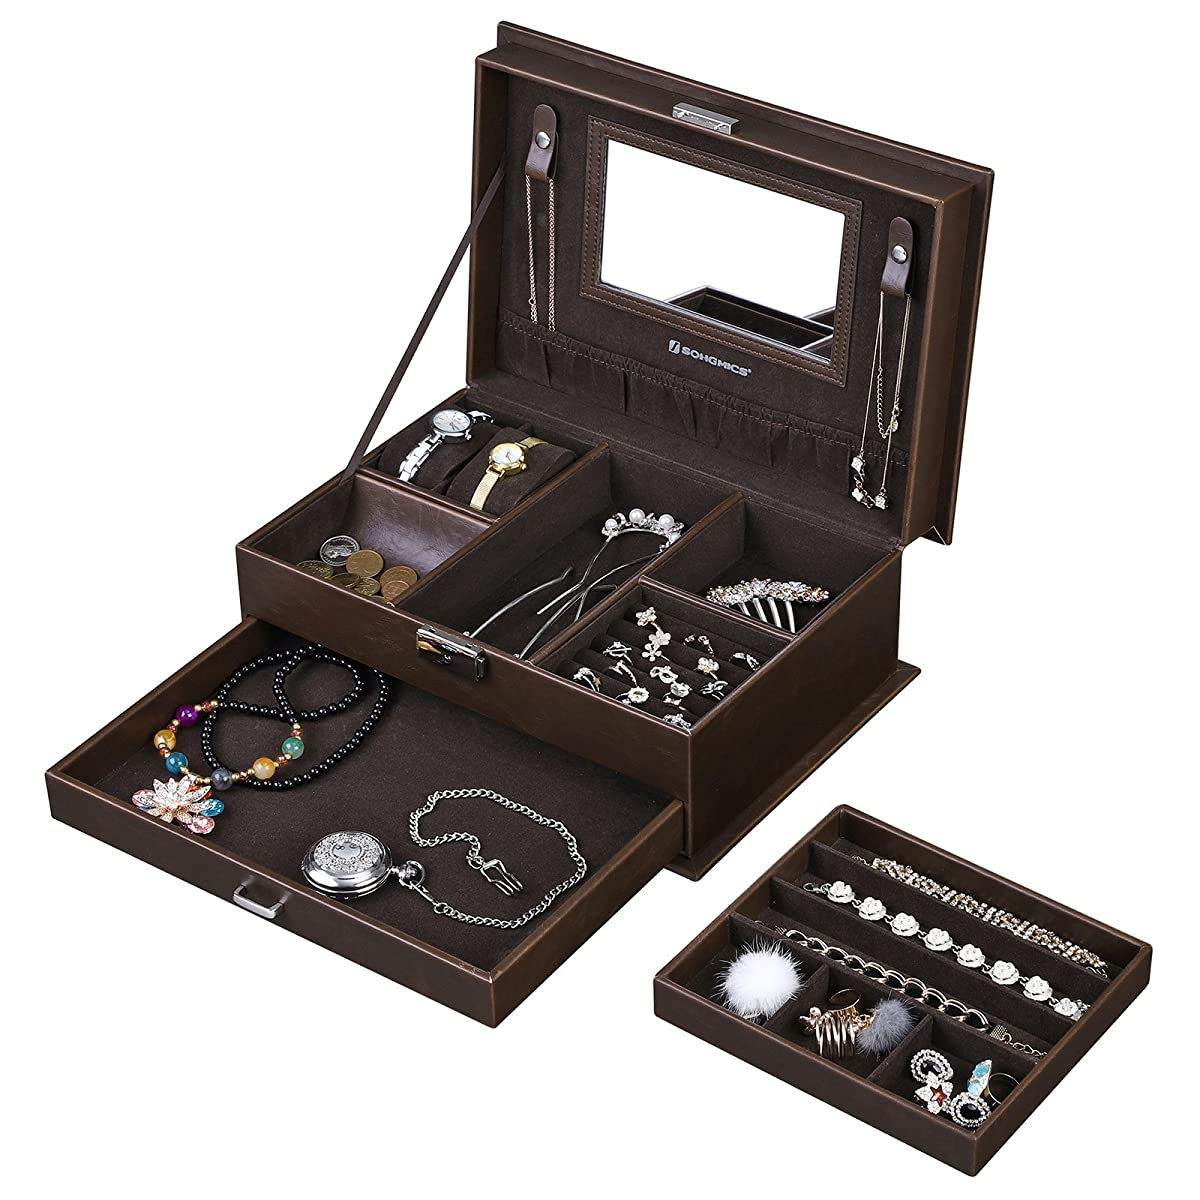 SONGMICS Watch Organizer Jewelry & Accessories Holder Display Case for Men & Women, Faux Leather, Brown UJBC221BR